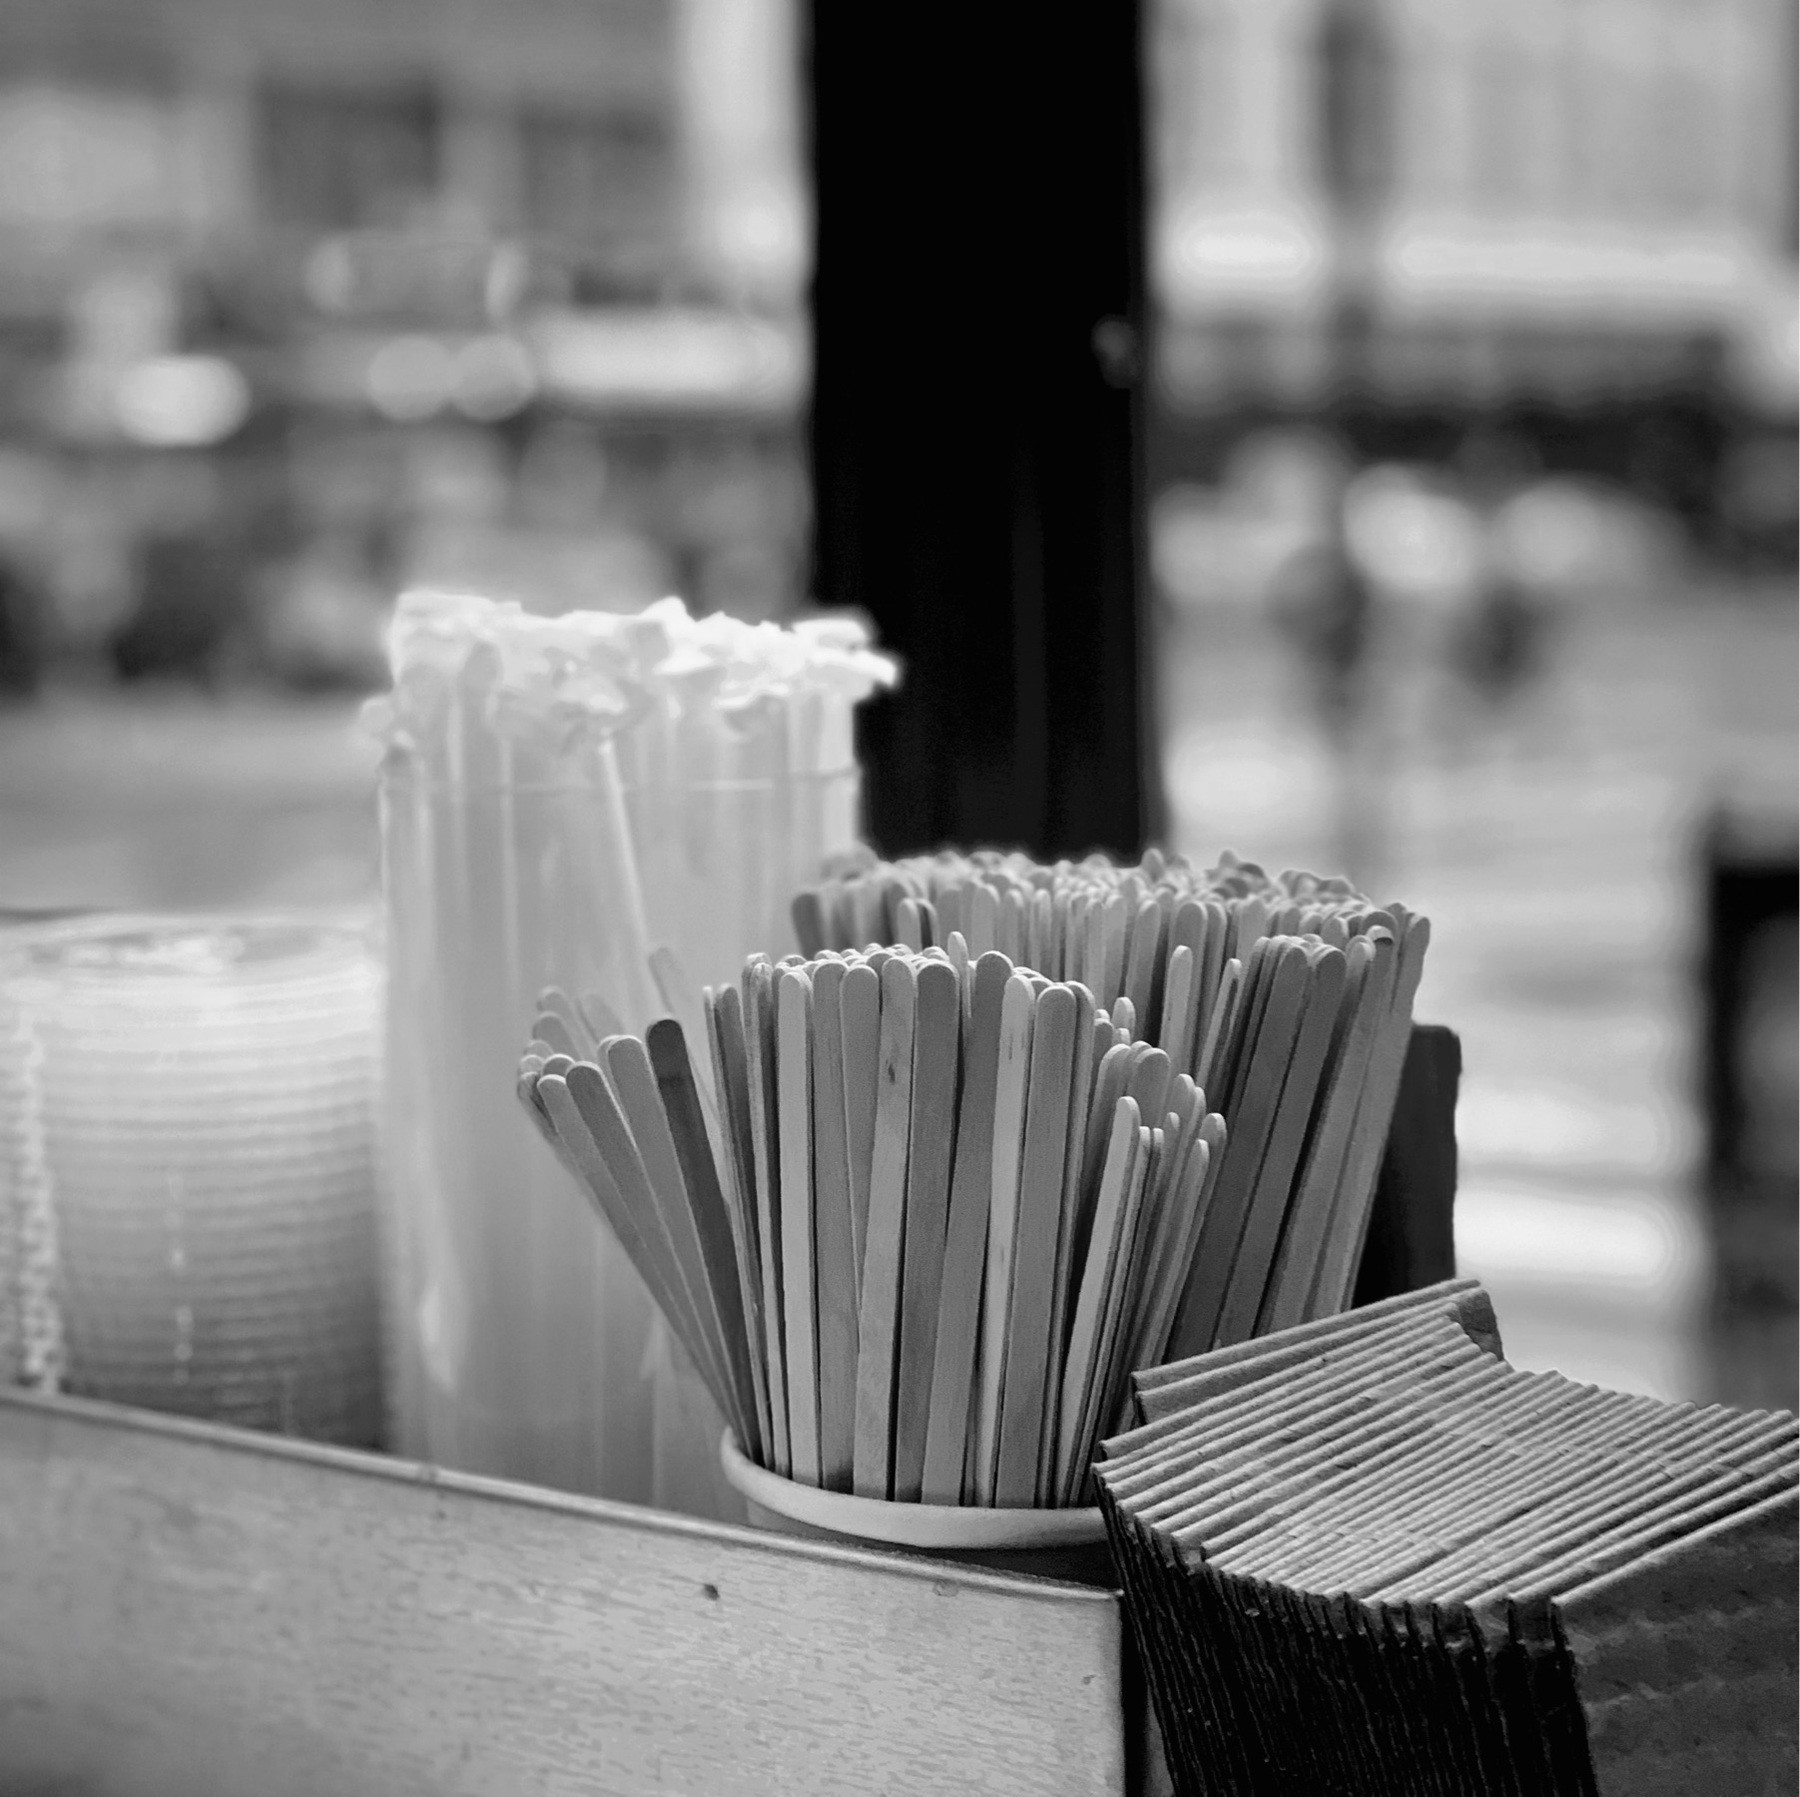 Straws and stirrers in a cafe window.